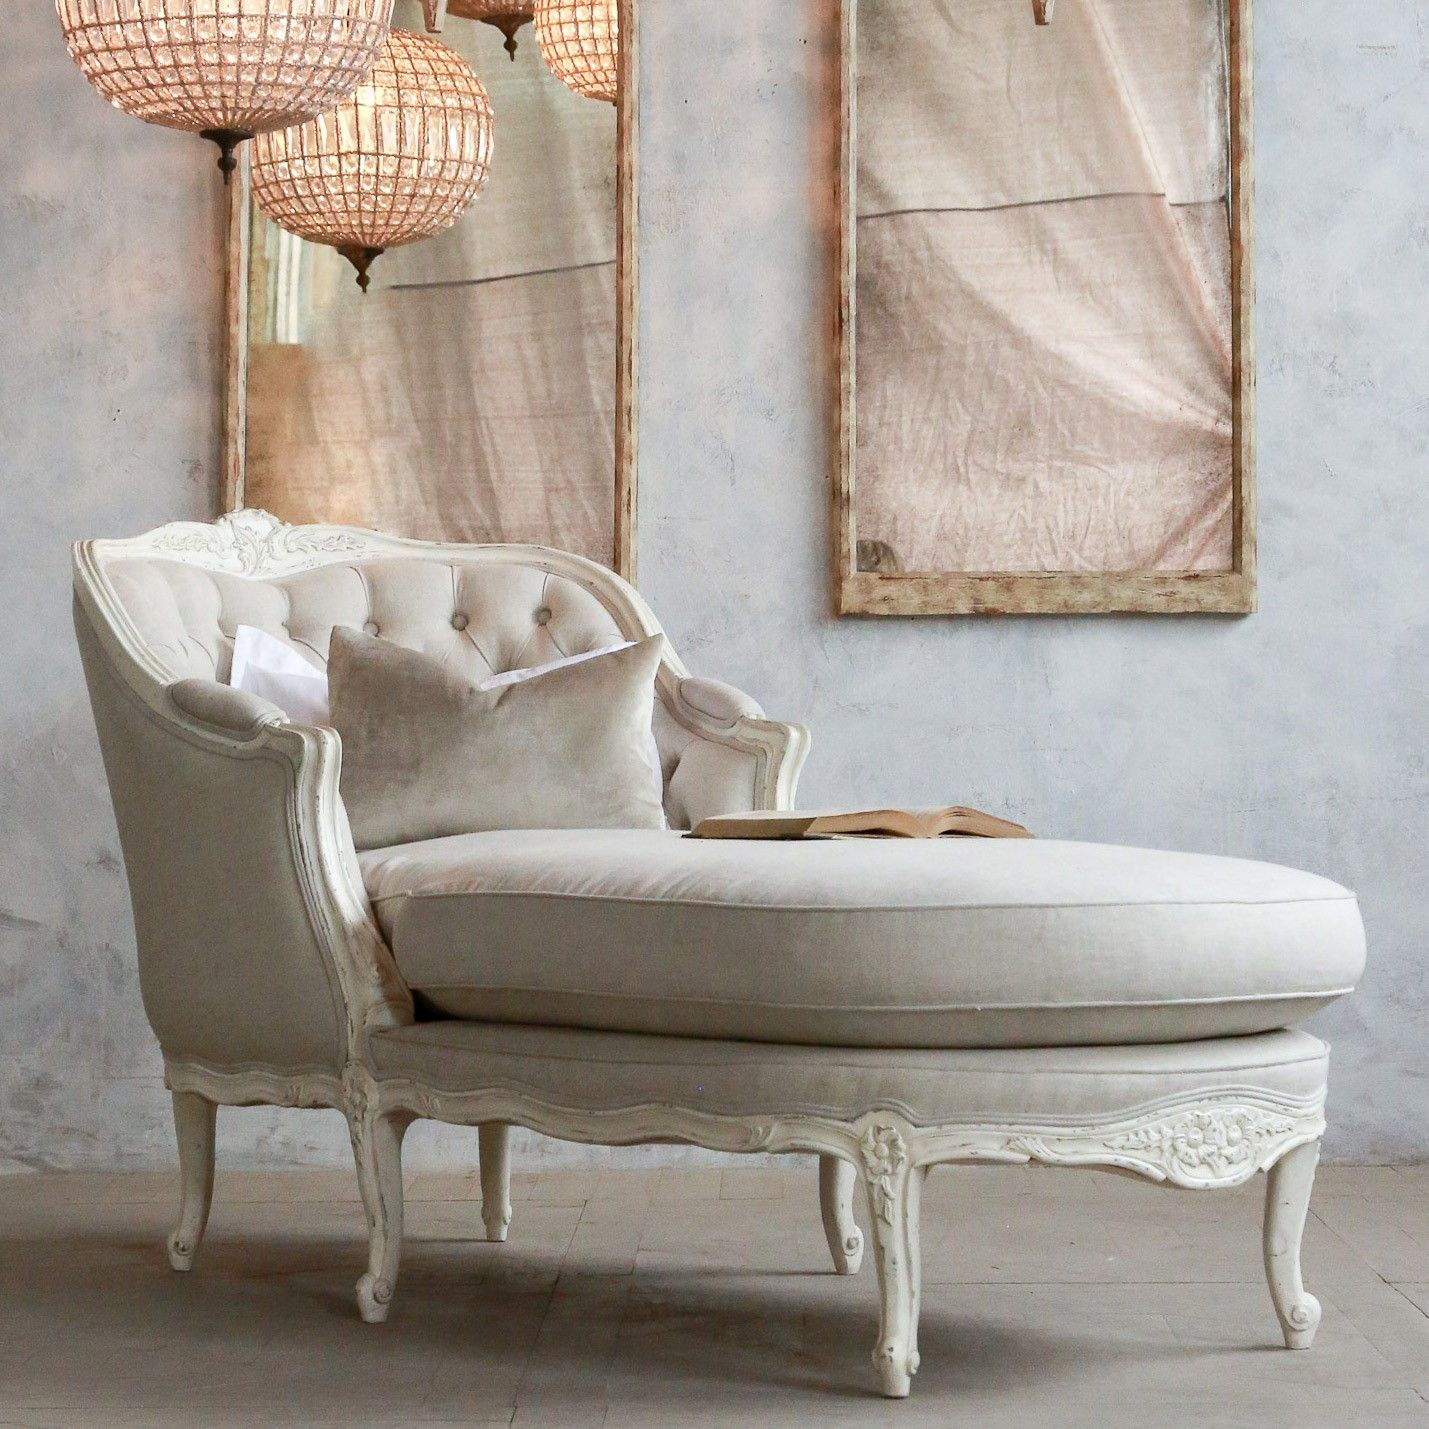 Eloquence Louis Tufted Antique White Chaise | Tufted ottomans ...